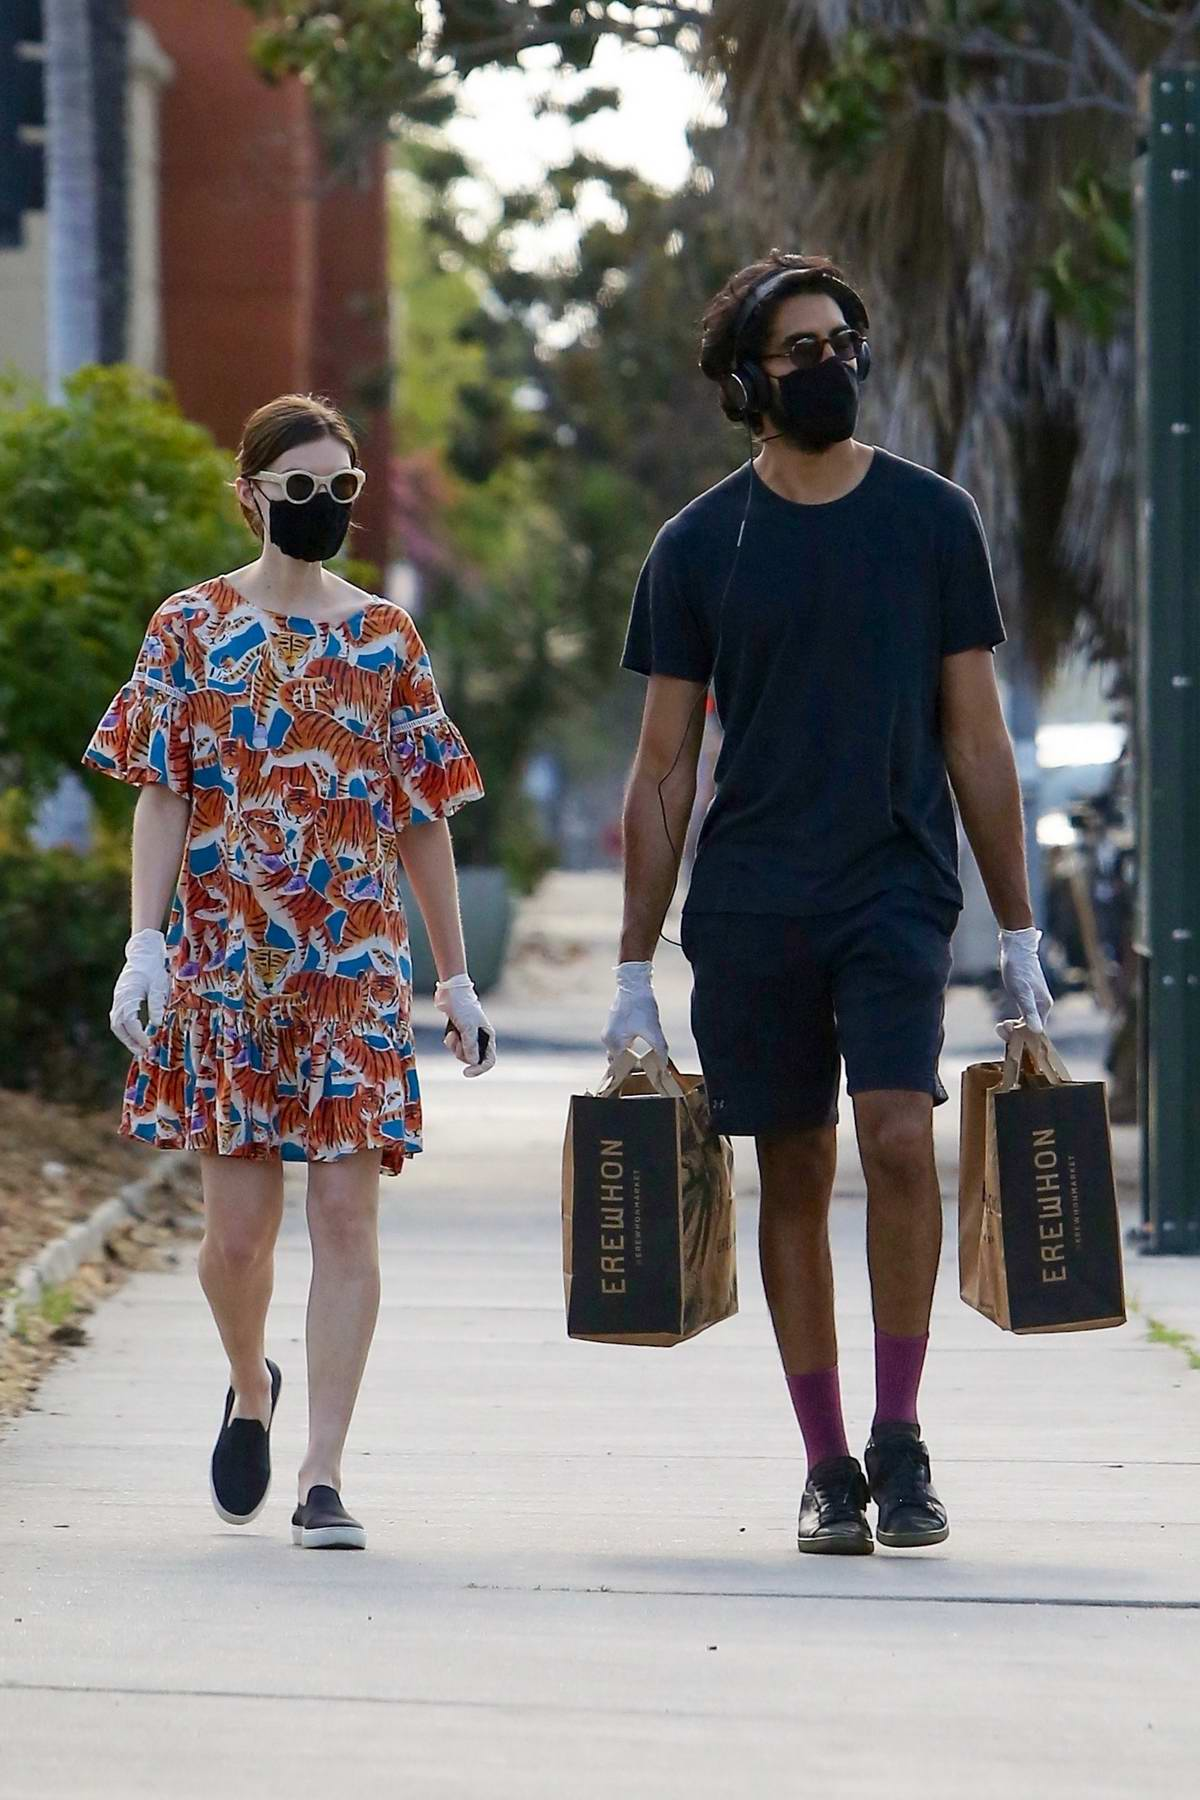 Tilda Cobham-Hervey and Dev Patel step out for some grocery shopping at Erewhon in West Hollywood, California